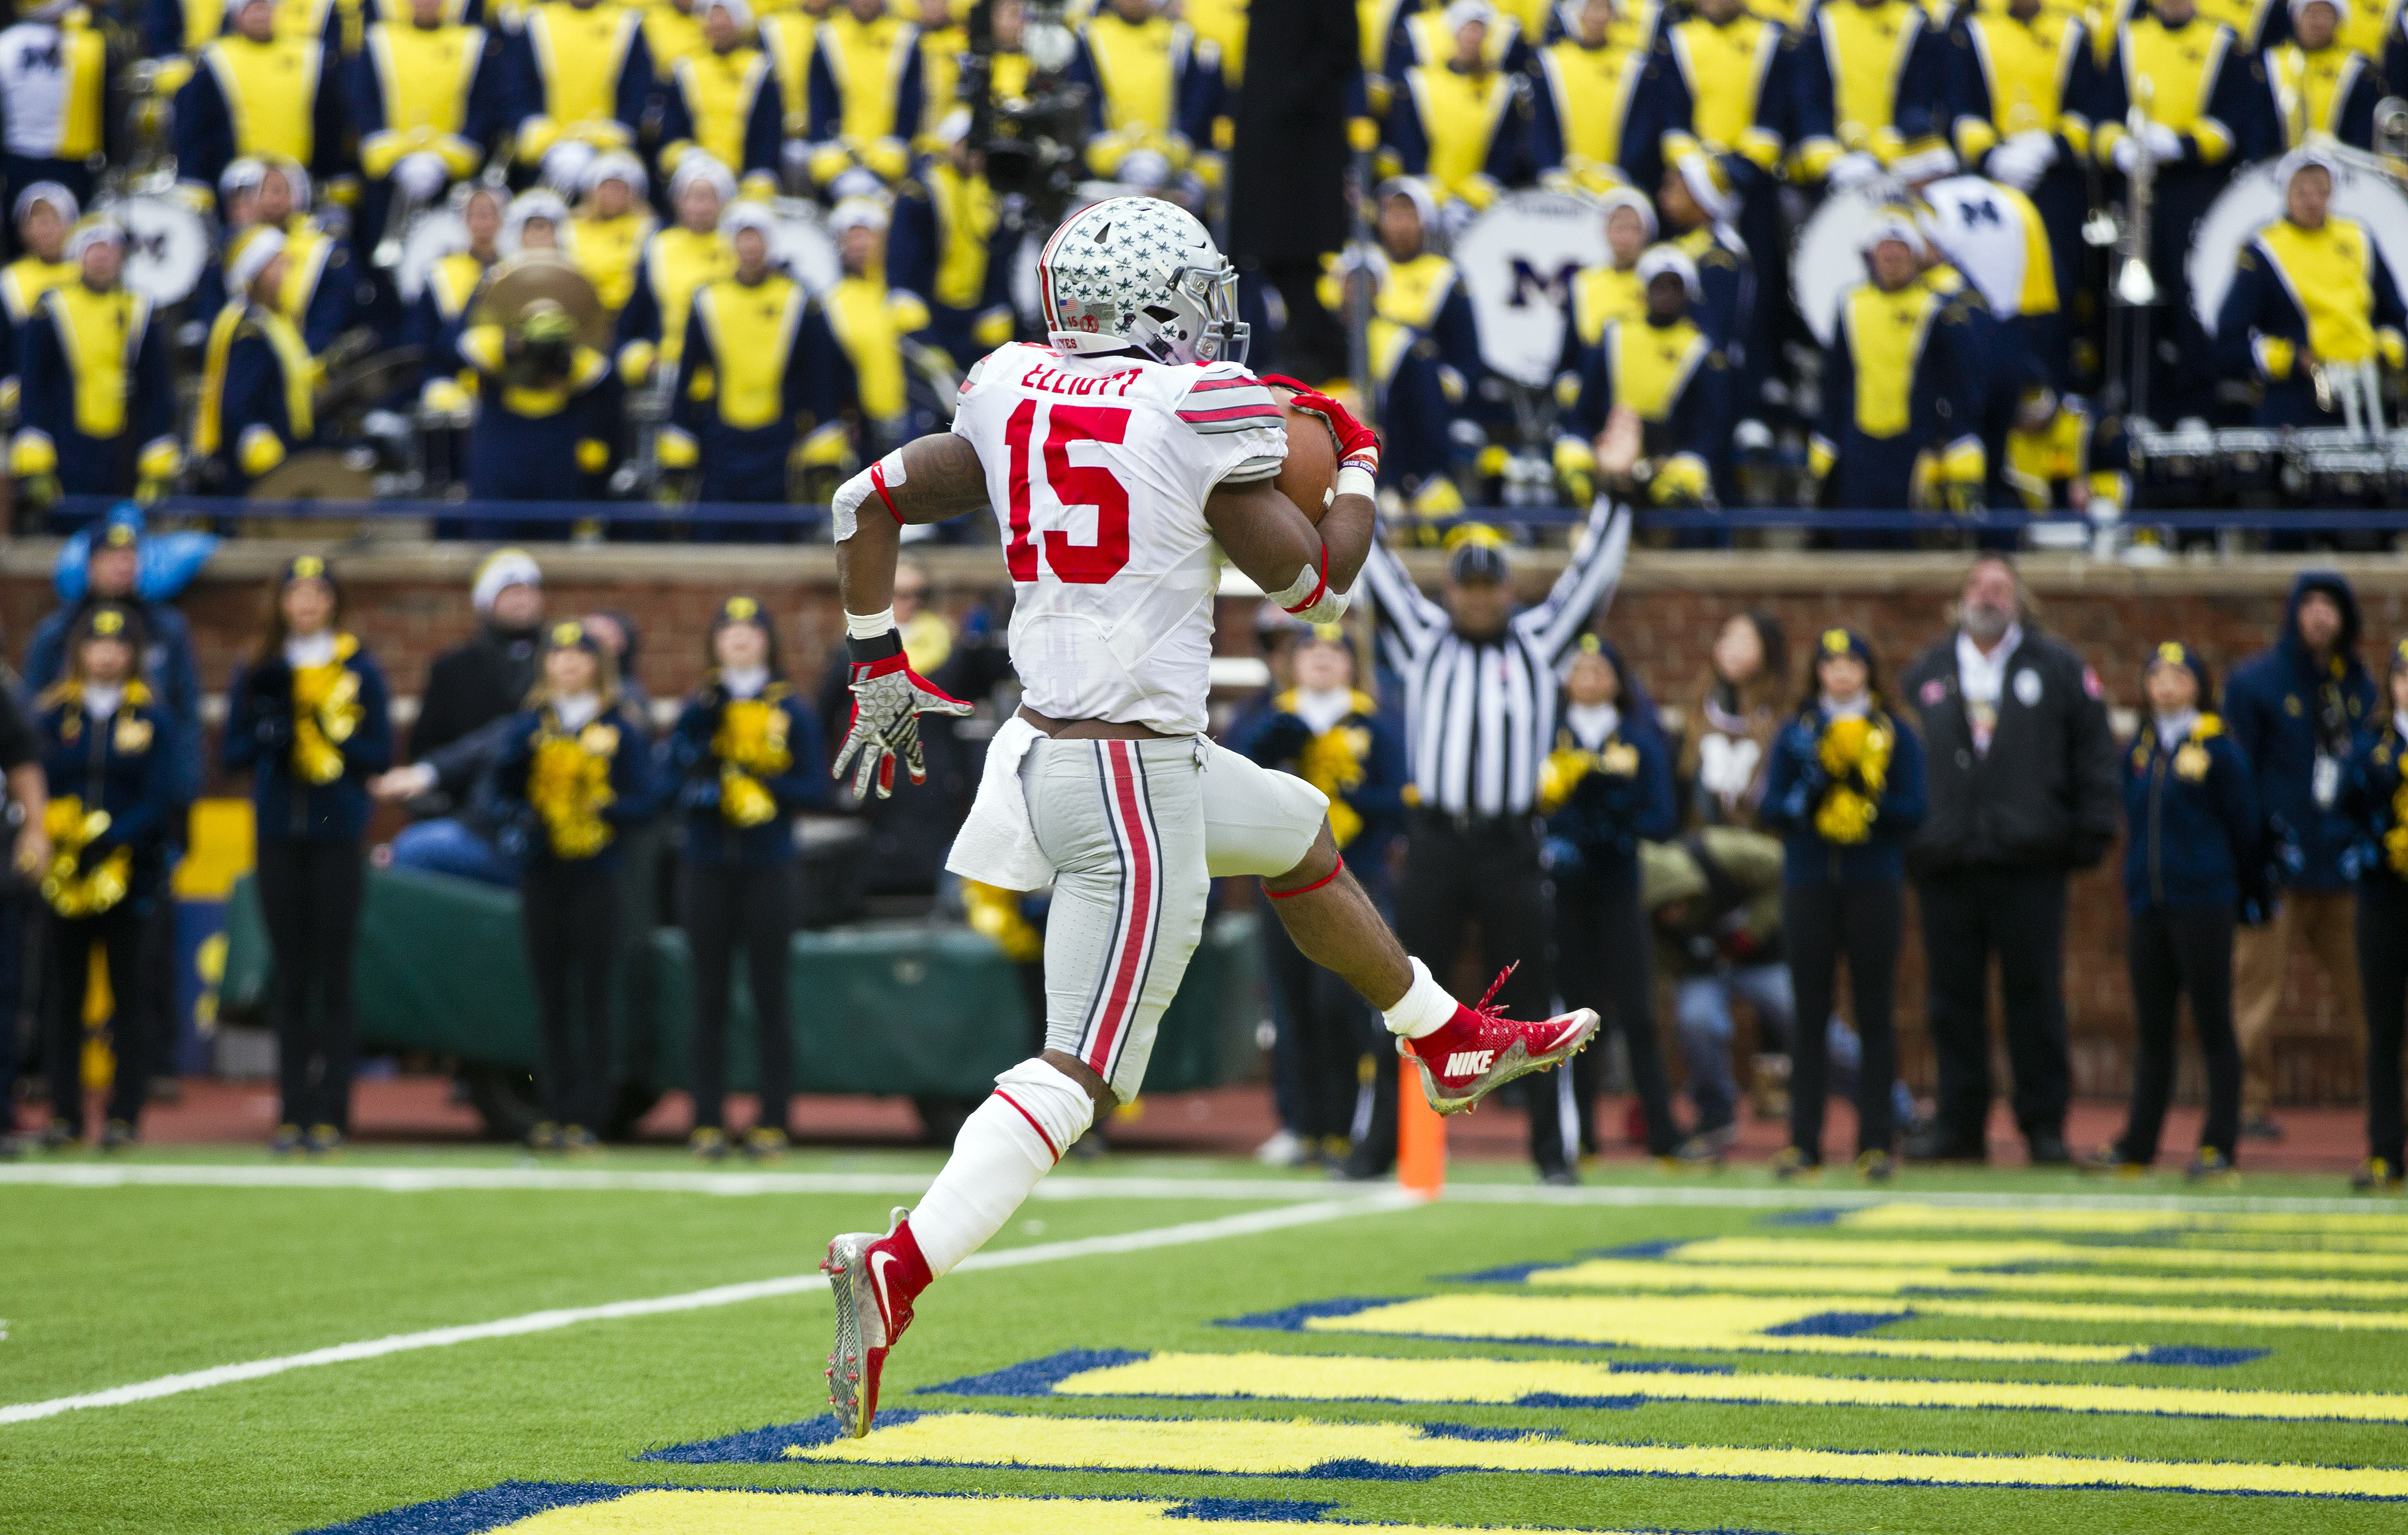 Ohio State running back Ezekiel Elliott (15) high steps into the end zone to score a touchdown in the second quarter of an NCAA college football game against Michigan in Ann Arbor, Mich., Saturday, Nov. 28, 2015. (AP Photo/Tony Ding)